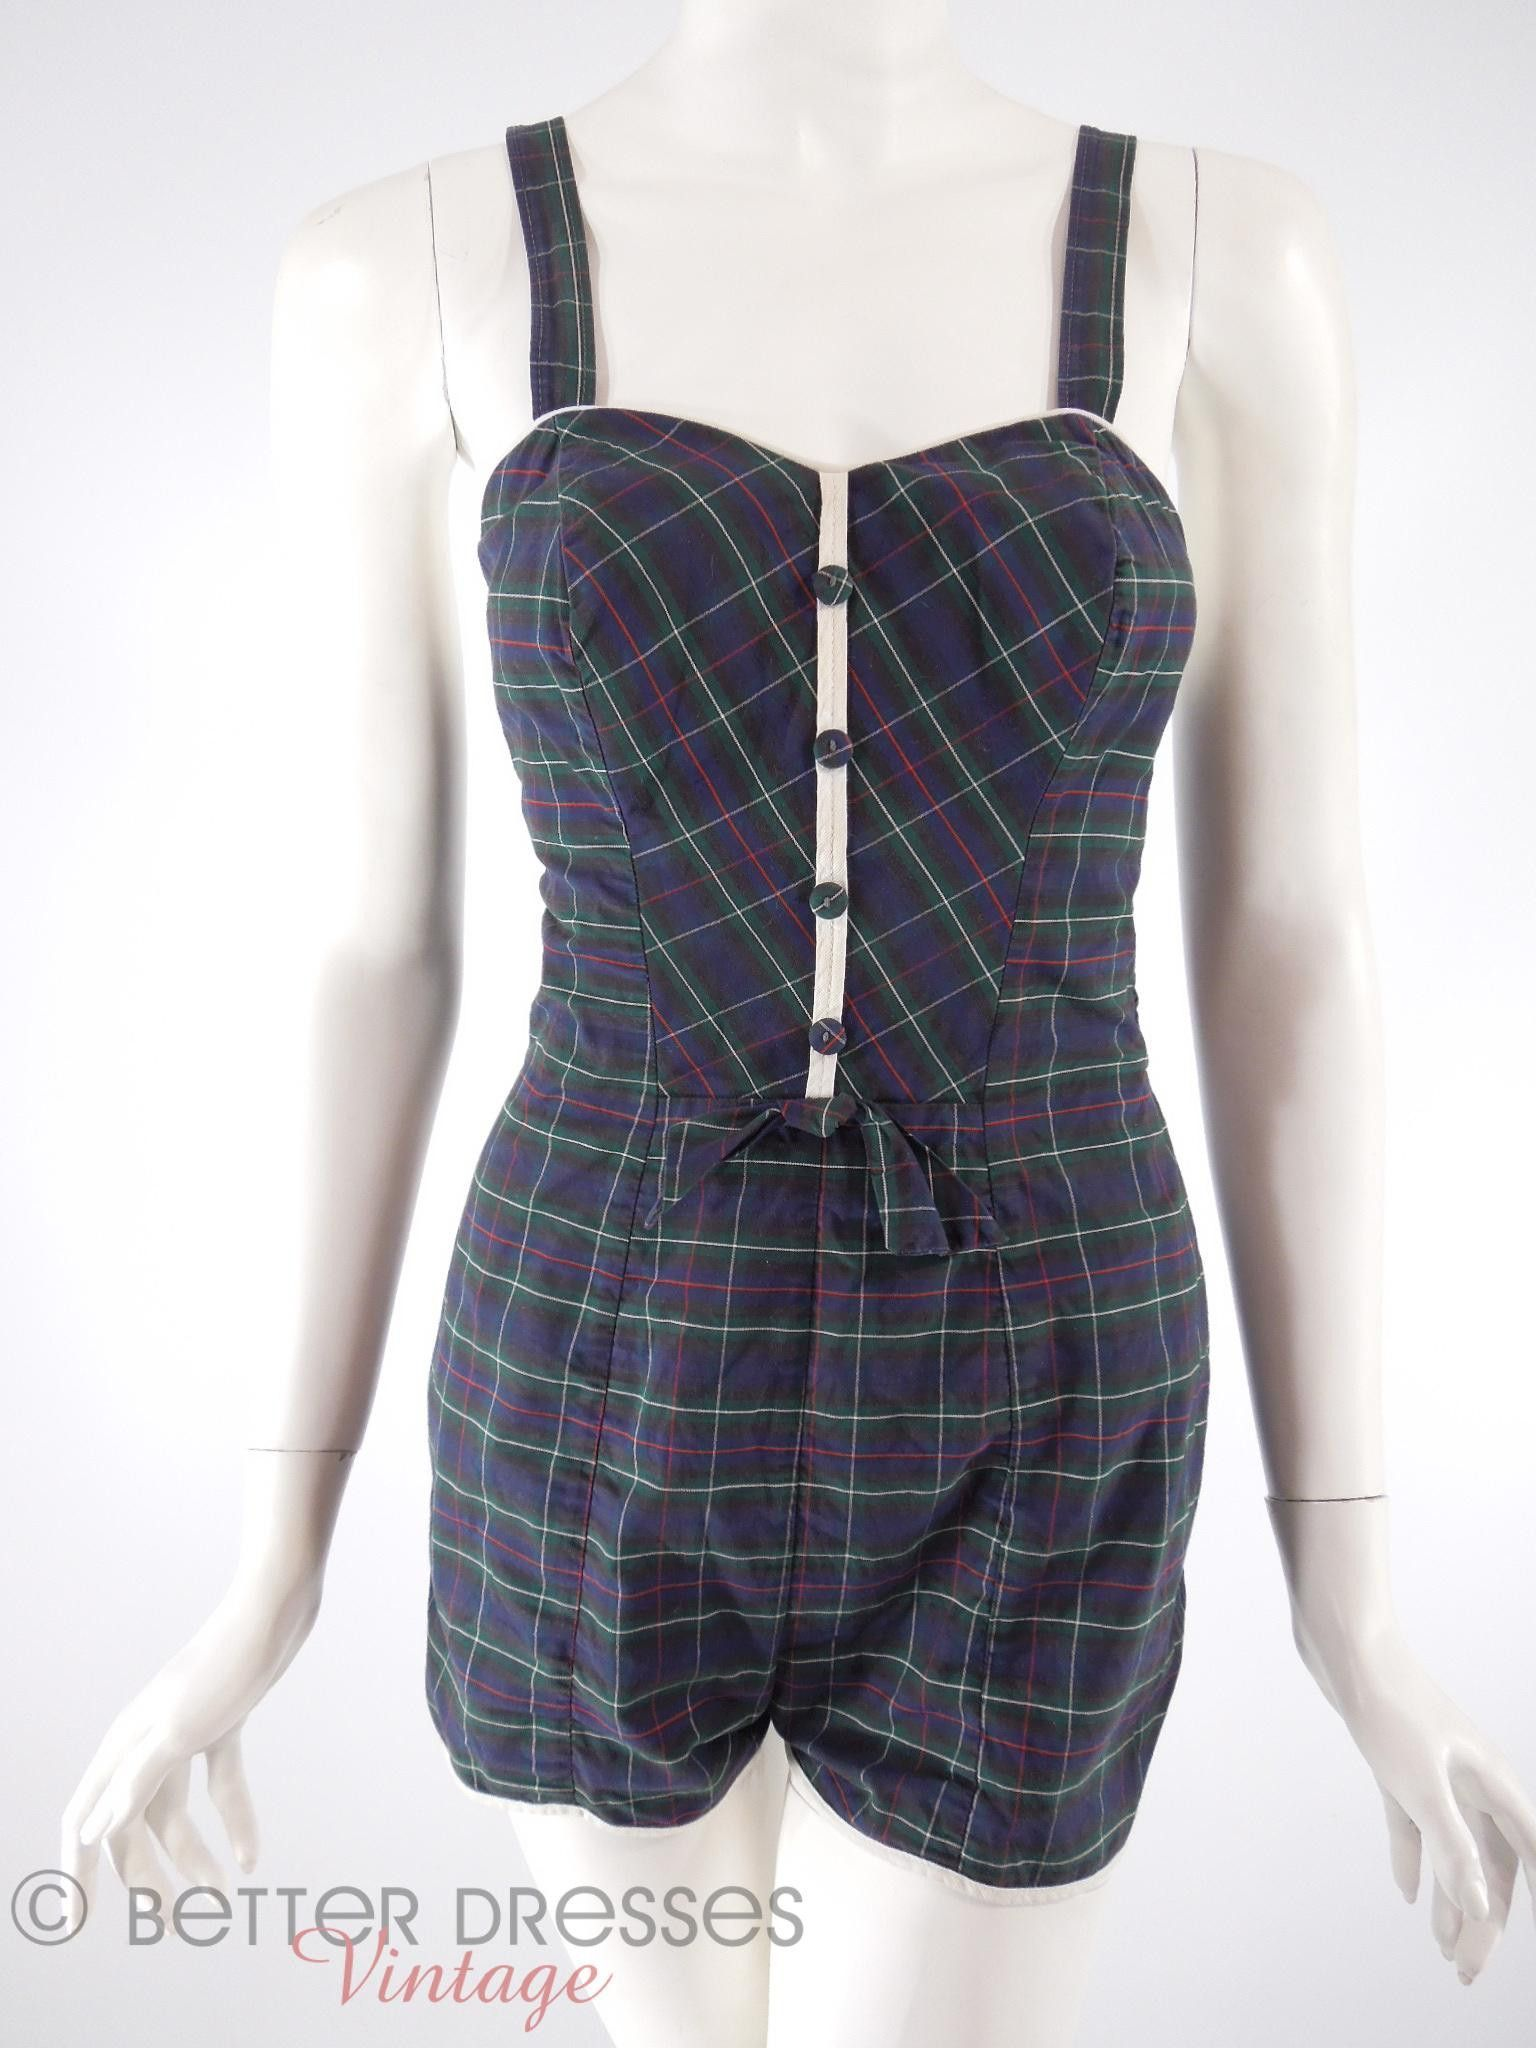 7ca5e561b7632 Vintage 1950s Pin-Up Swimsuit and Playsuit in Navy Plaid Cotton - sm by  Better Dresses Vintage